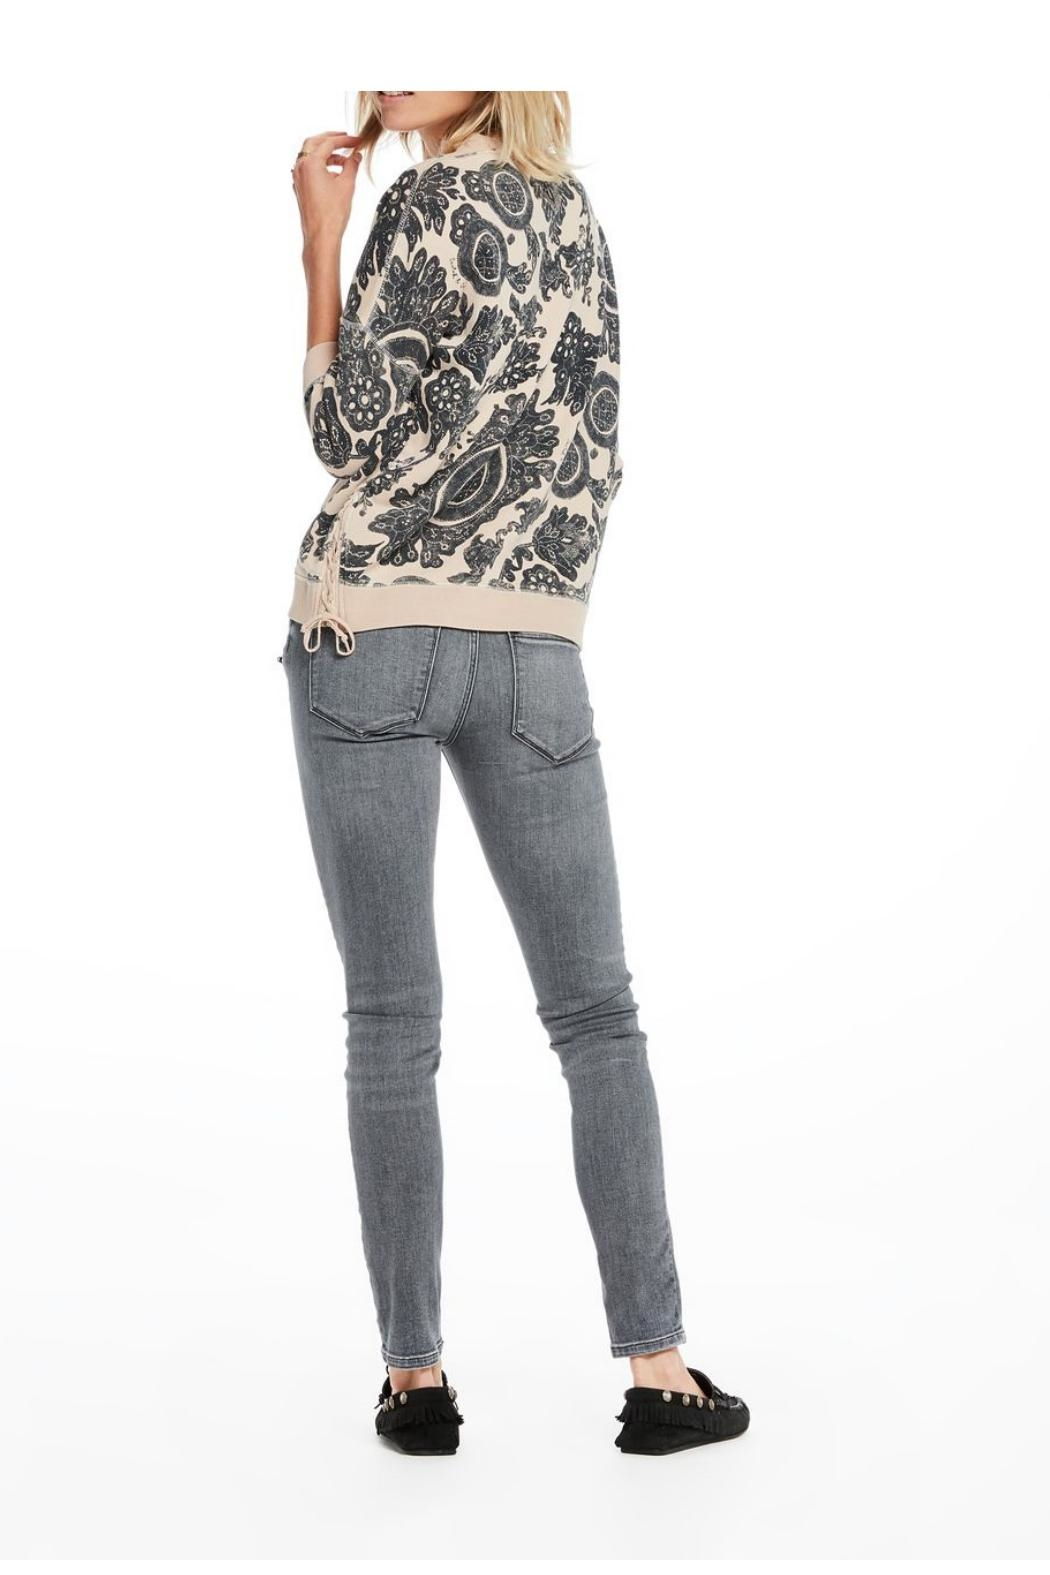 Scotch and Soda Printed Sweater - Side Cropped Image